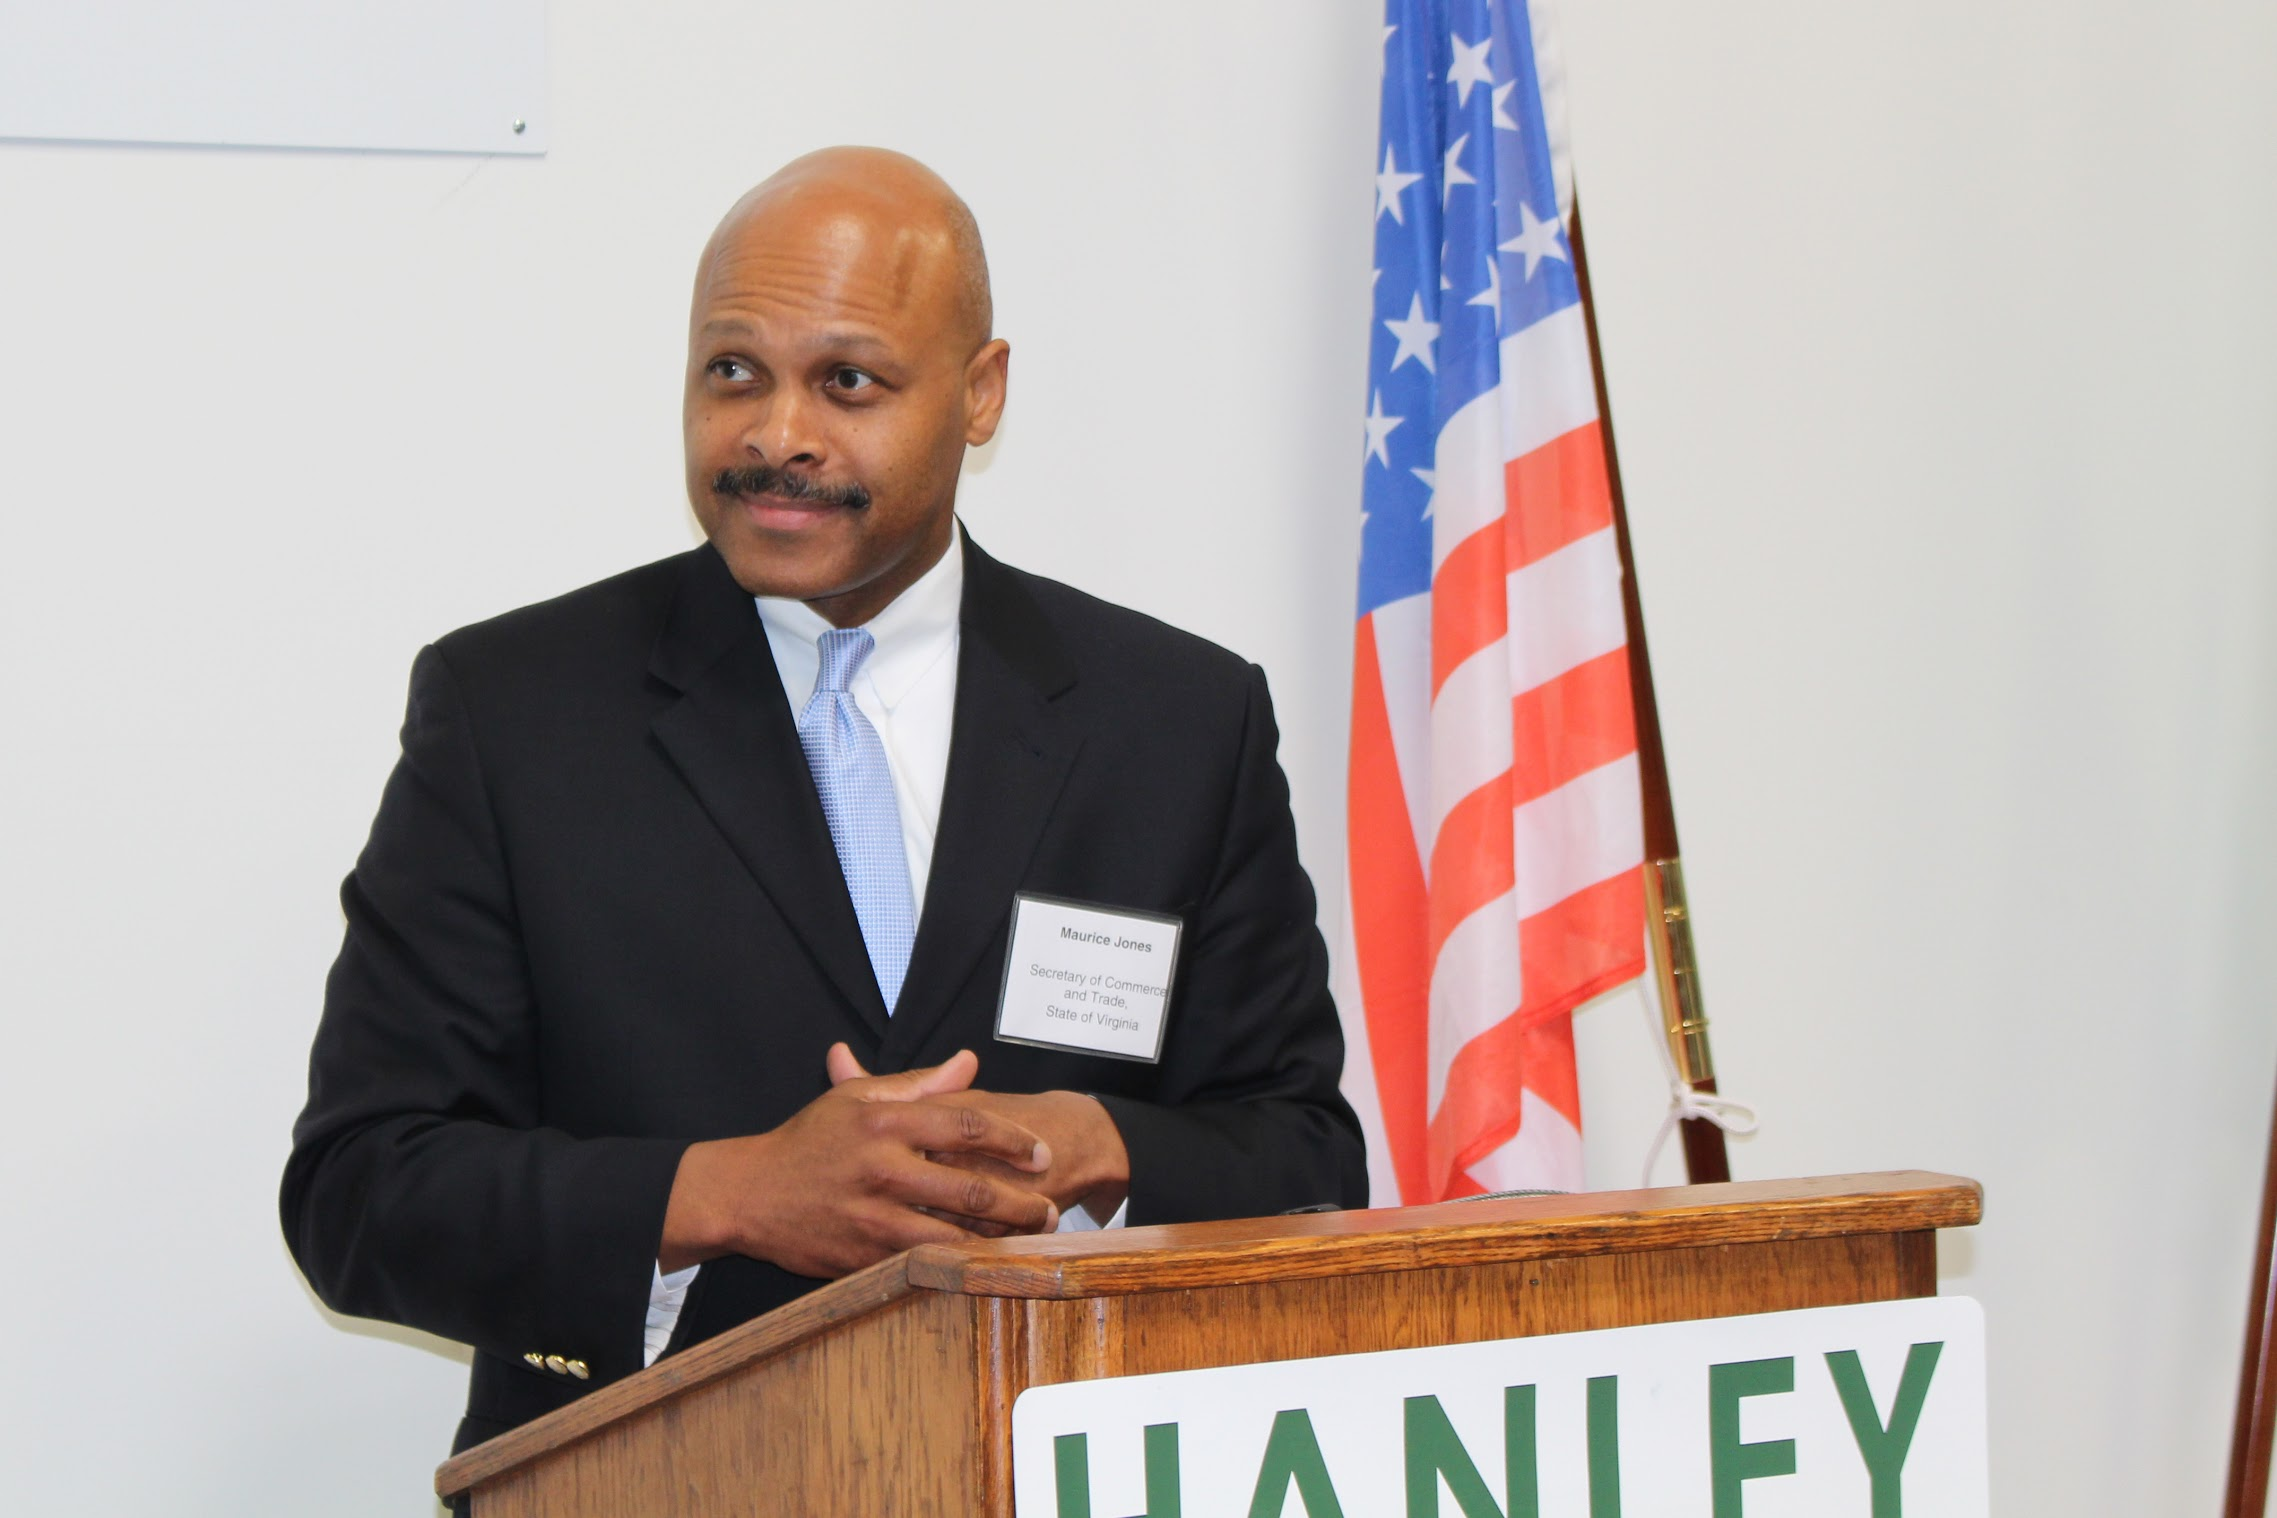 Maurice Jones, Secretary of Commerce and Trade for State of Virginia